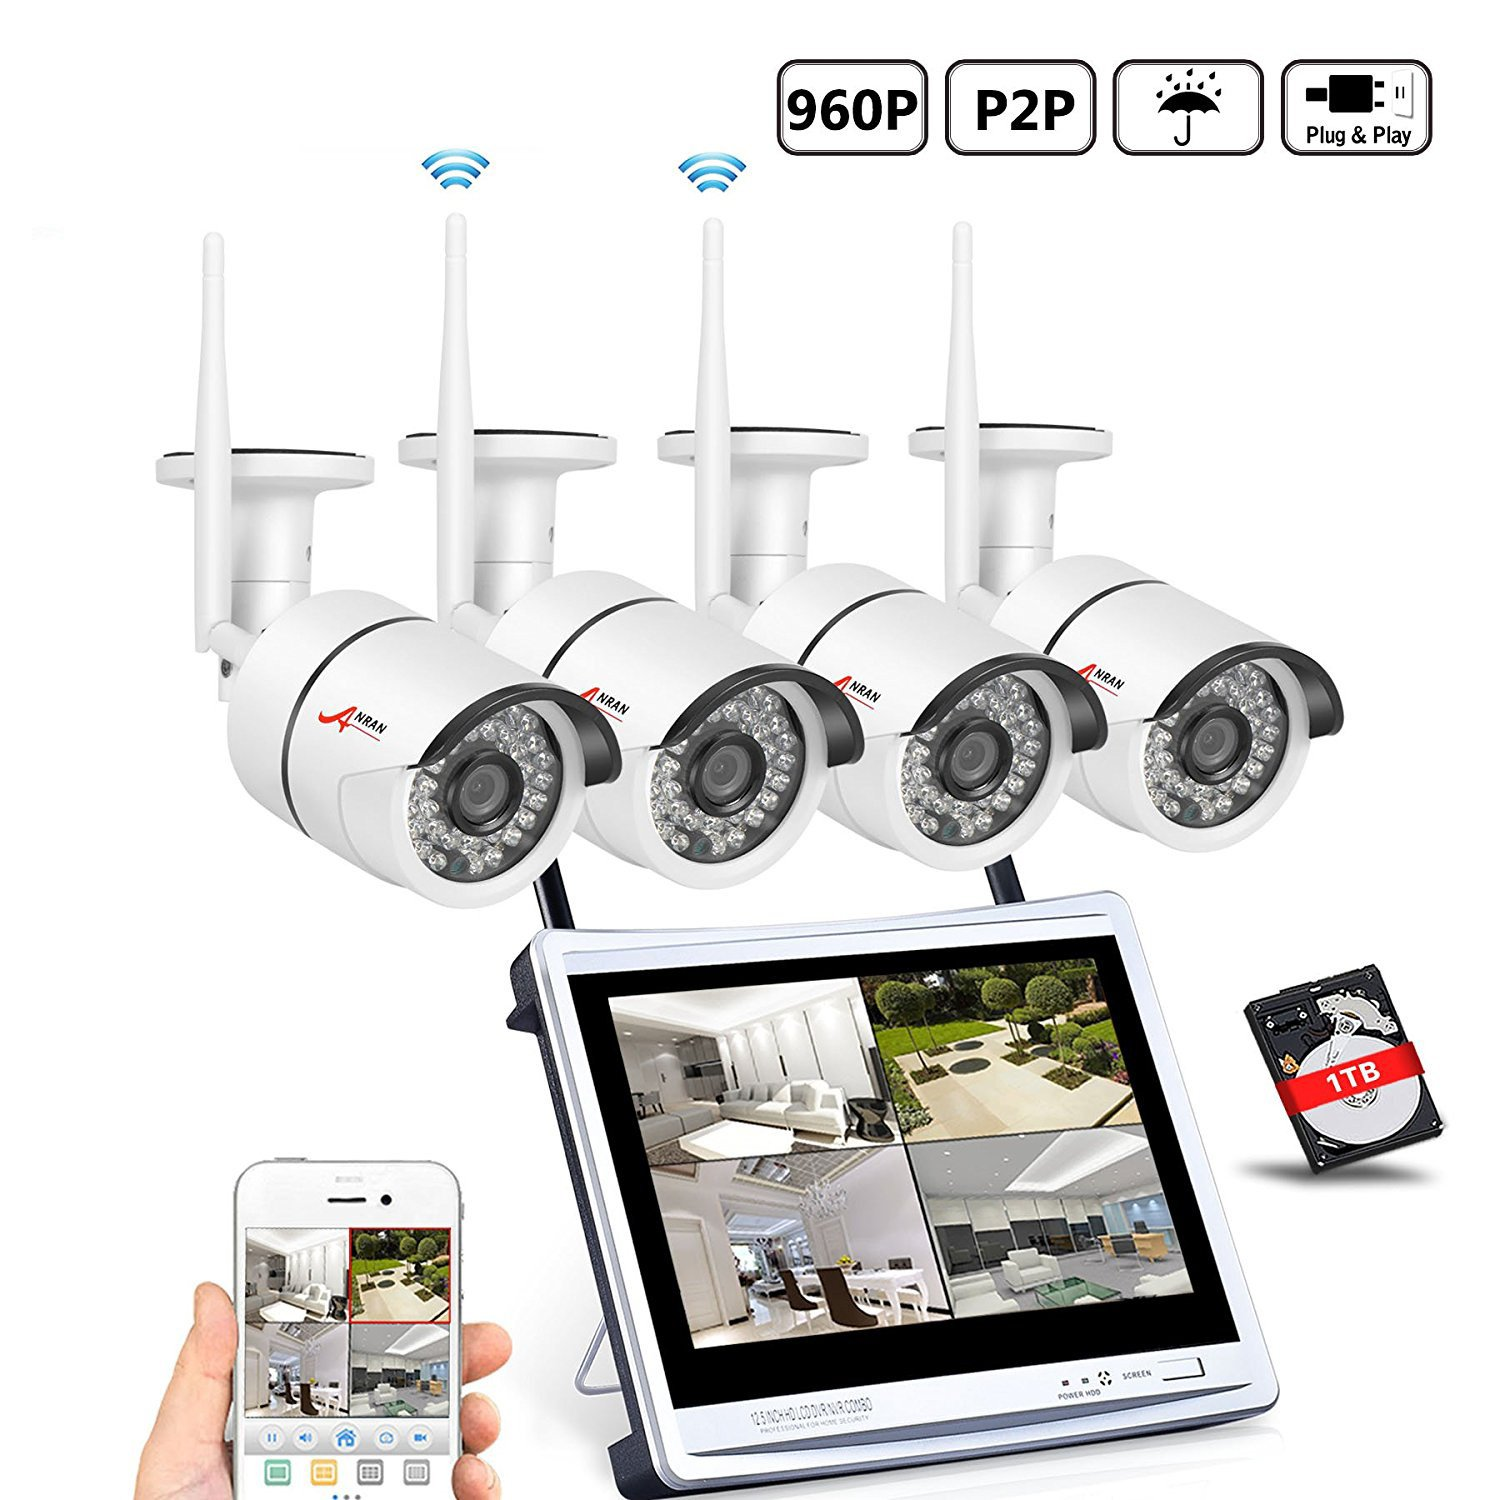 ANRAN 4CH 960P Wireless Home Security System 1080p 12inch LCD Monitor DVR NVR Surveillance Kit, 4pc 1.3MP Outdoor Indoor Waterproof Network Bullet Cameras, 1TB Hard Drive Auto Pair, Motion Detection